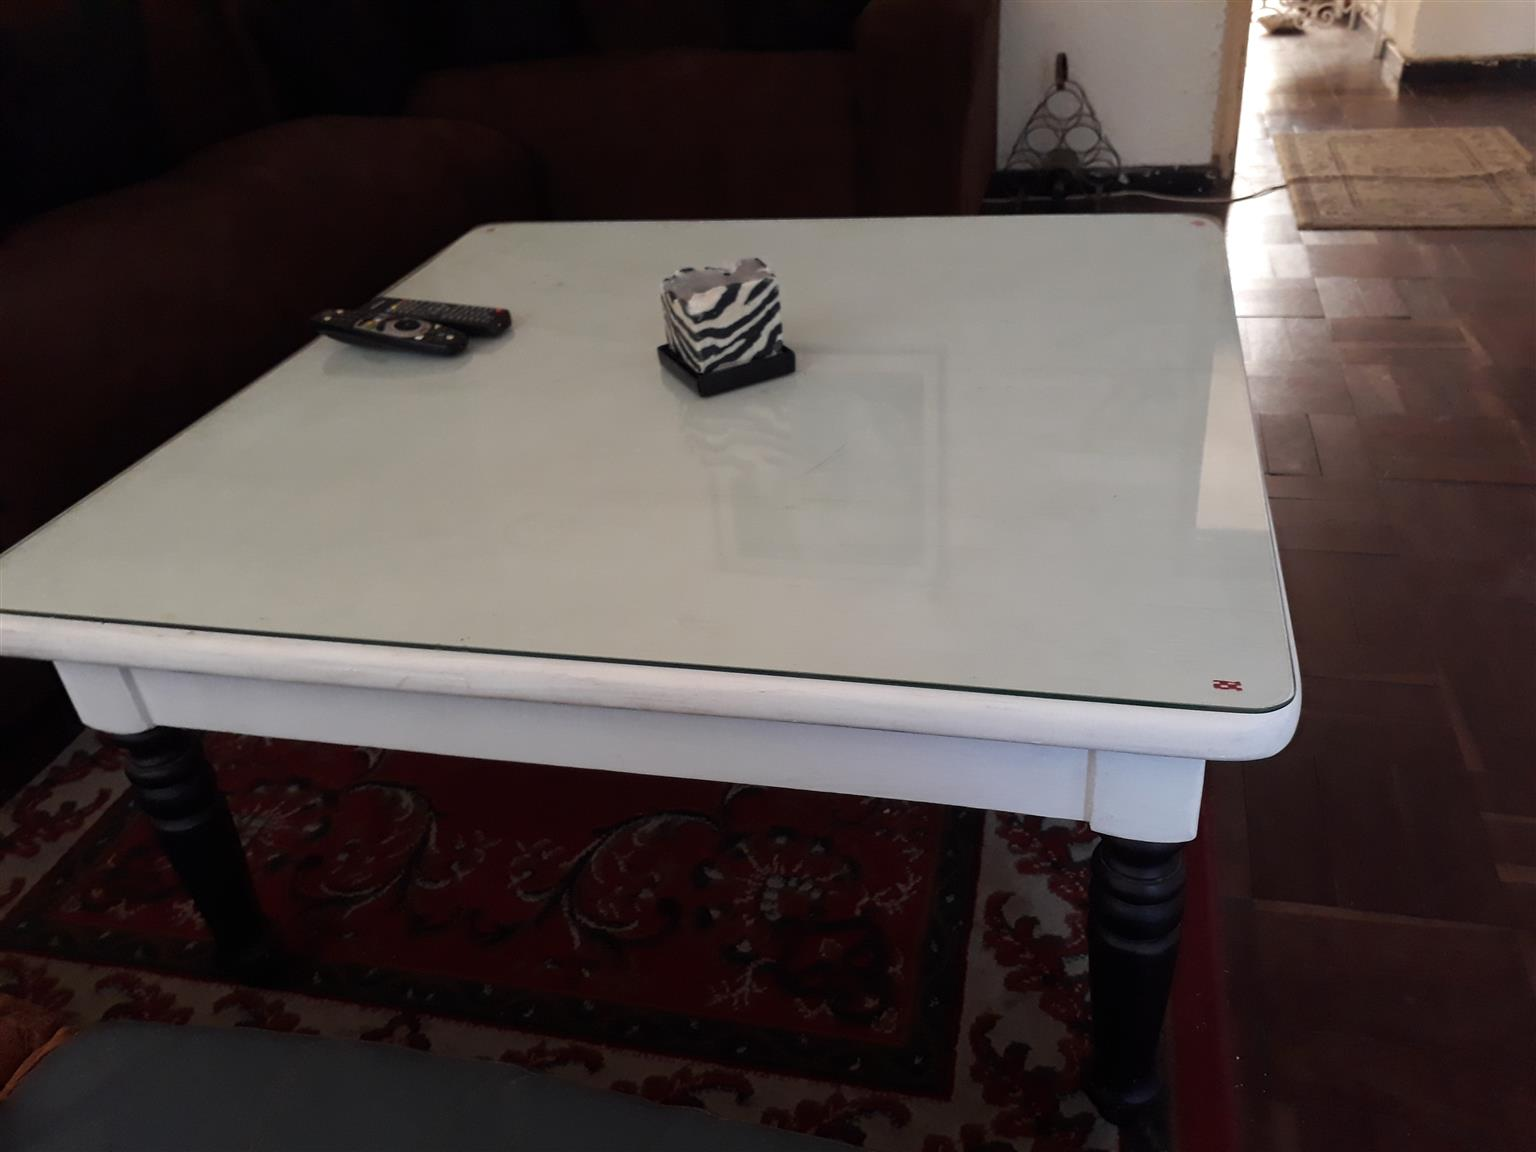 Coffee table for sale as per pictures